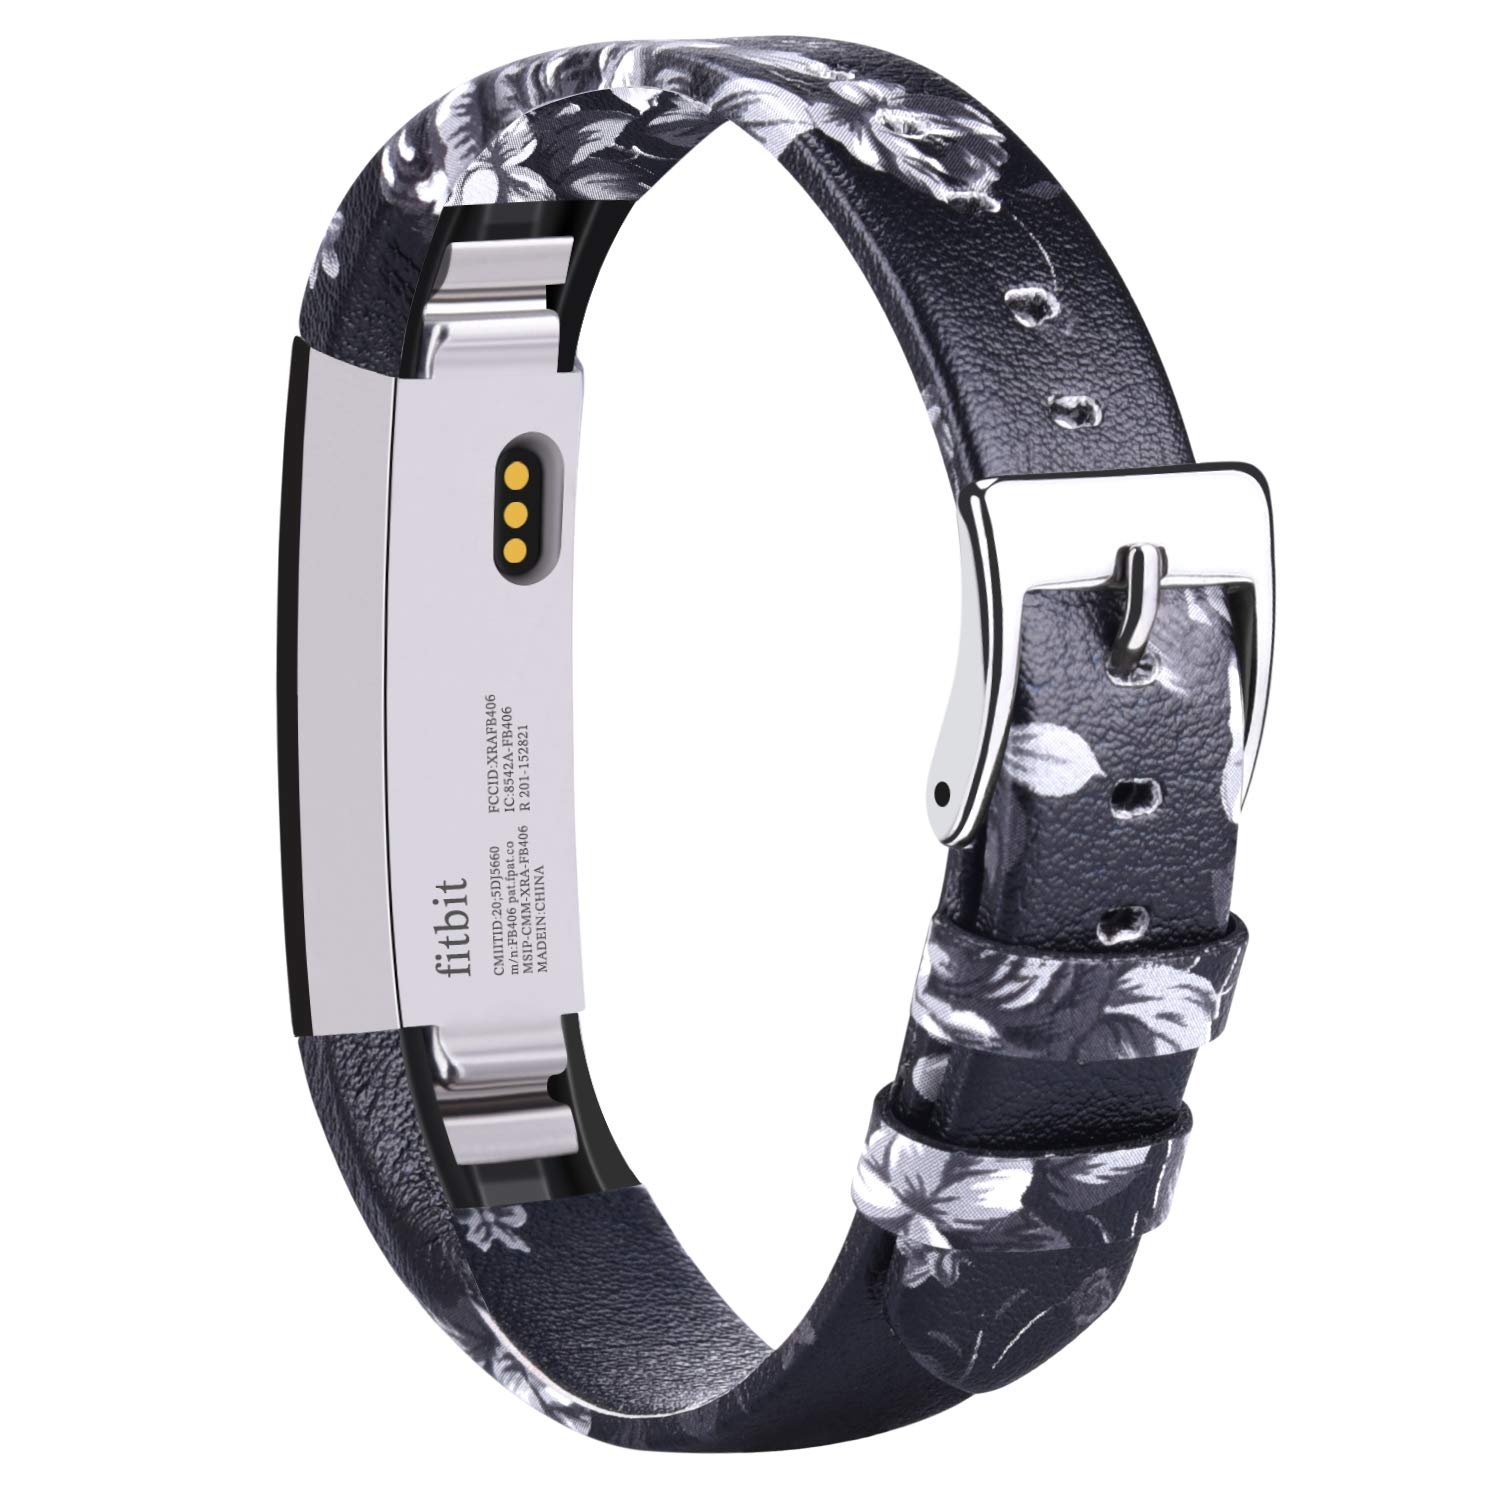 Vancle Leather Bands Compatible with Fitbit Alta/Fitbit Alta HR for Women Men, Adjustable Replacement Accessories Strap with Buckle for Fitbit Alta and Fitbit Alta HR (.Floral Gray)